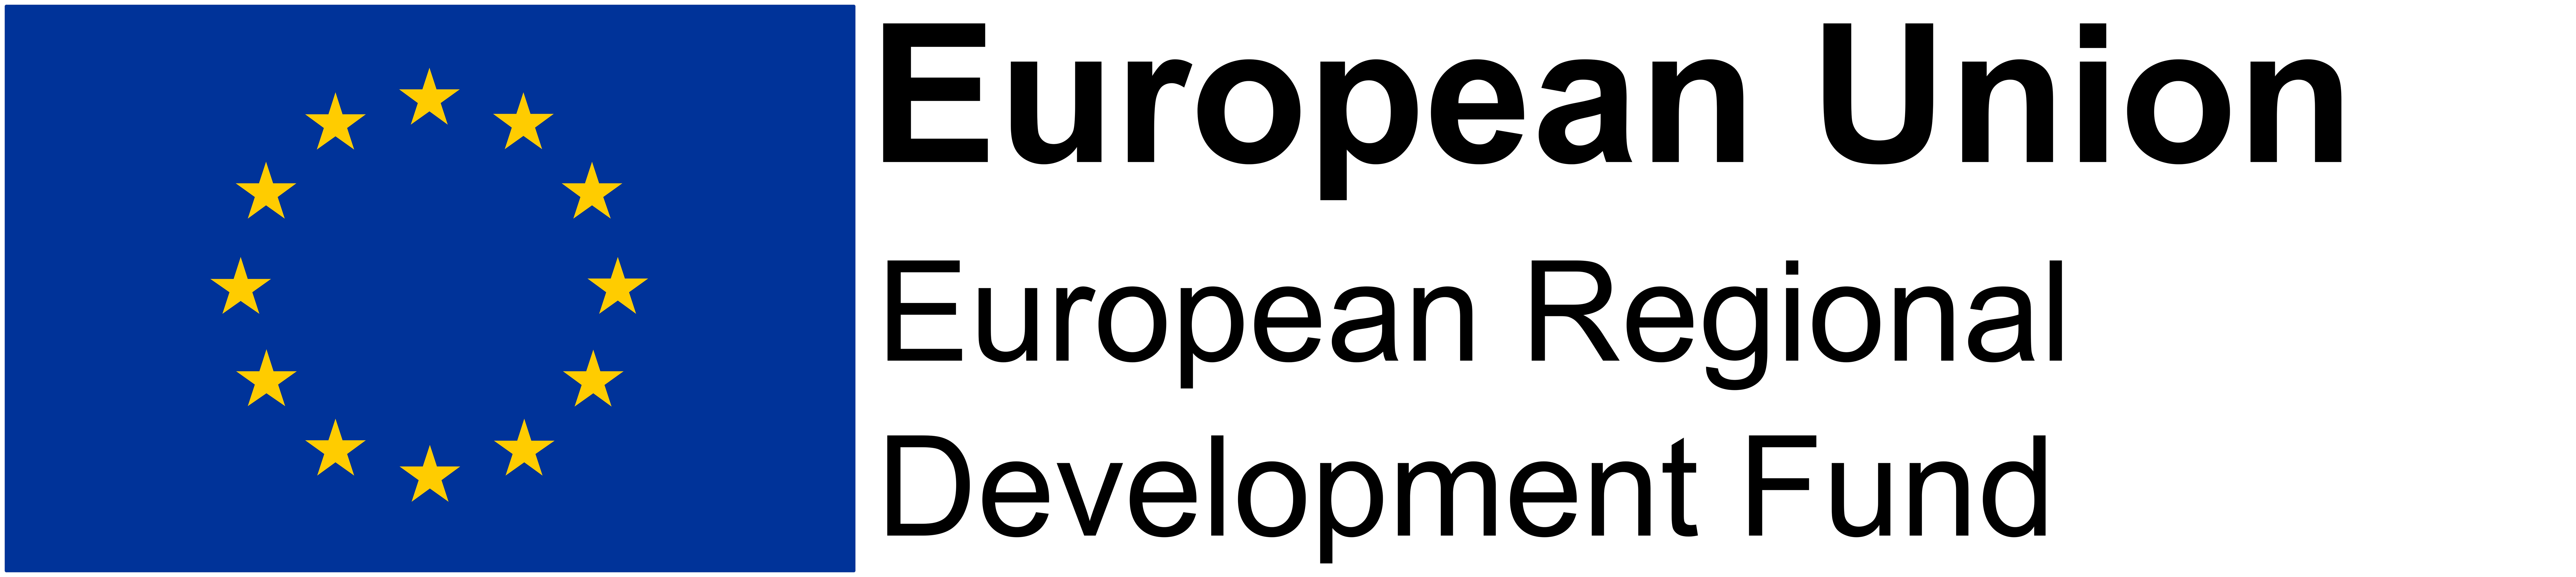 European_Regional_Development_Fund